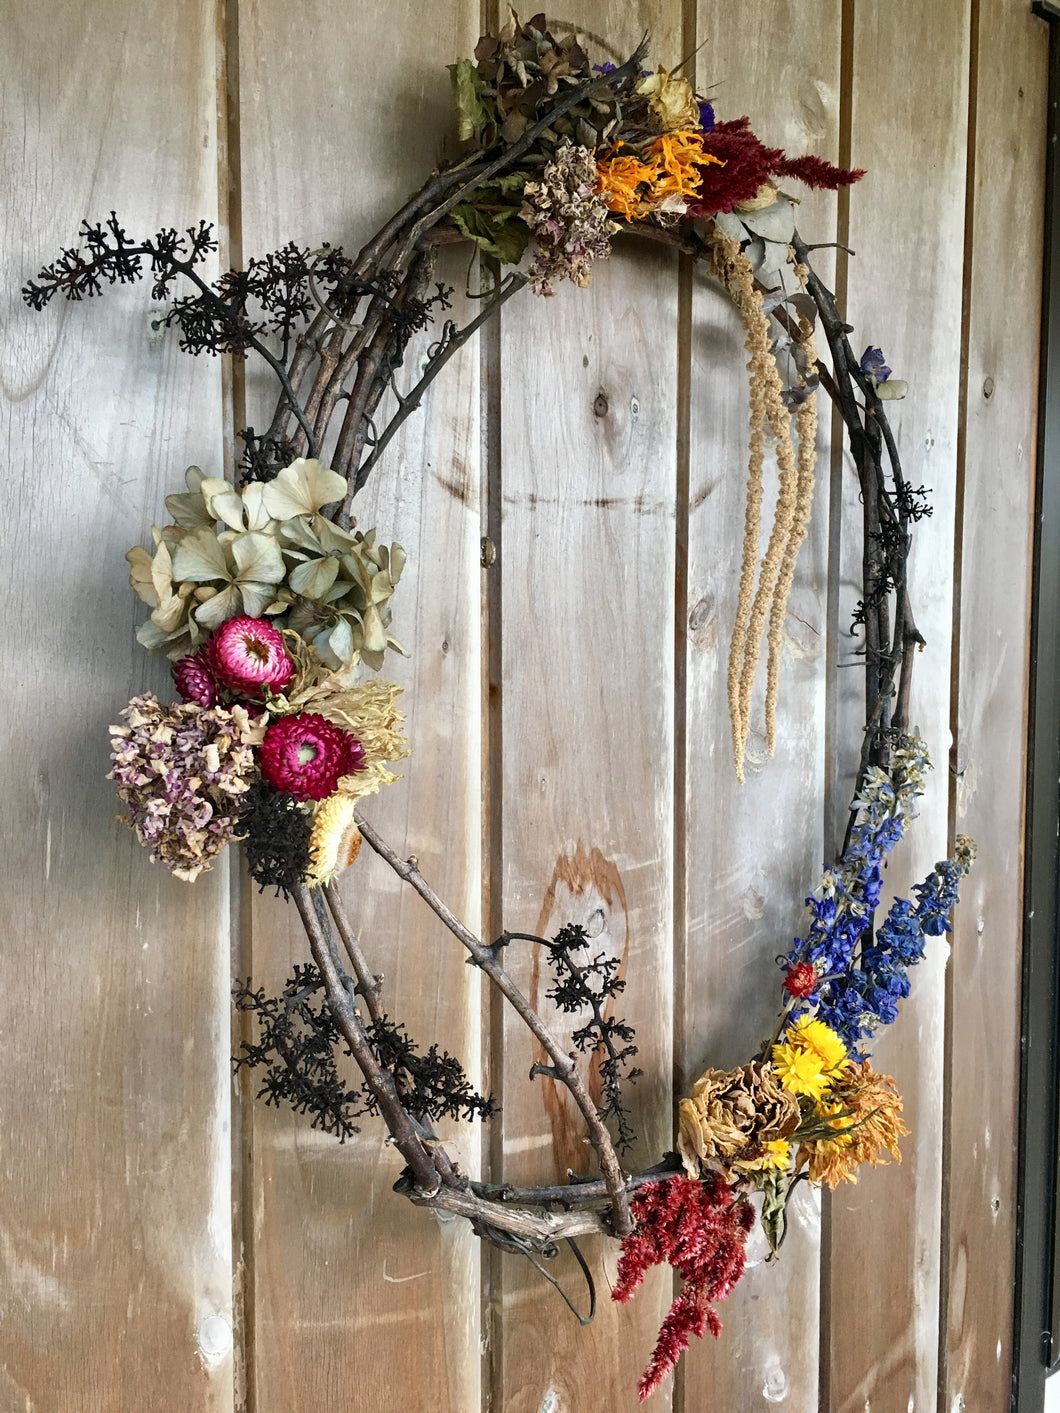 'Dreaming of Spring' Forever Wreath